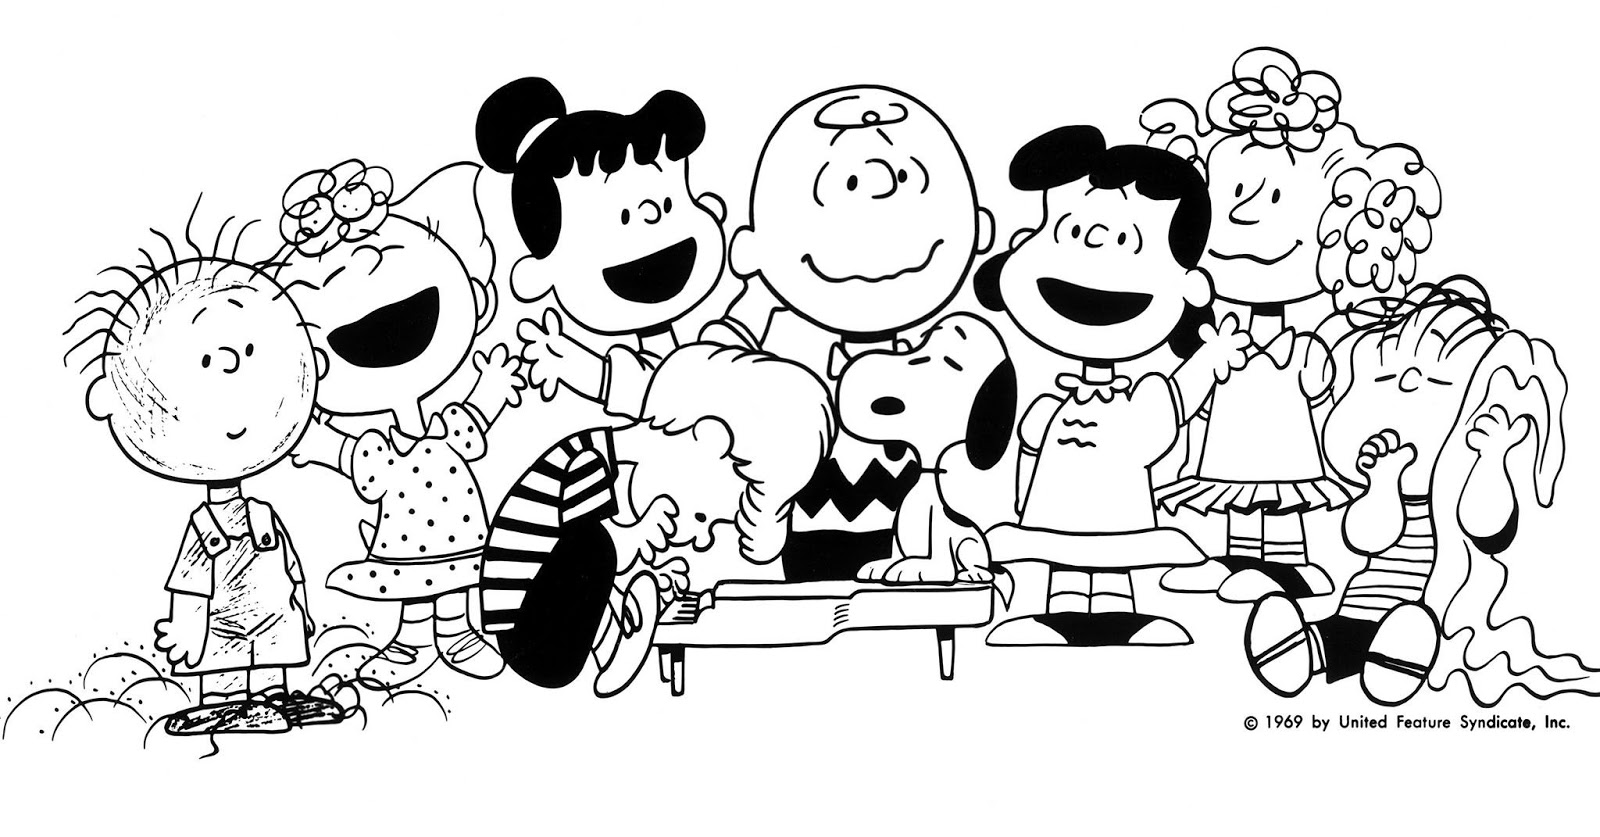 Win a THE PEANUTS: CHARLIE BROWN T-Shirt! | Forces of Geek